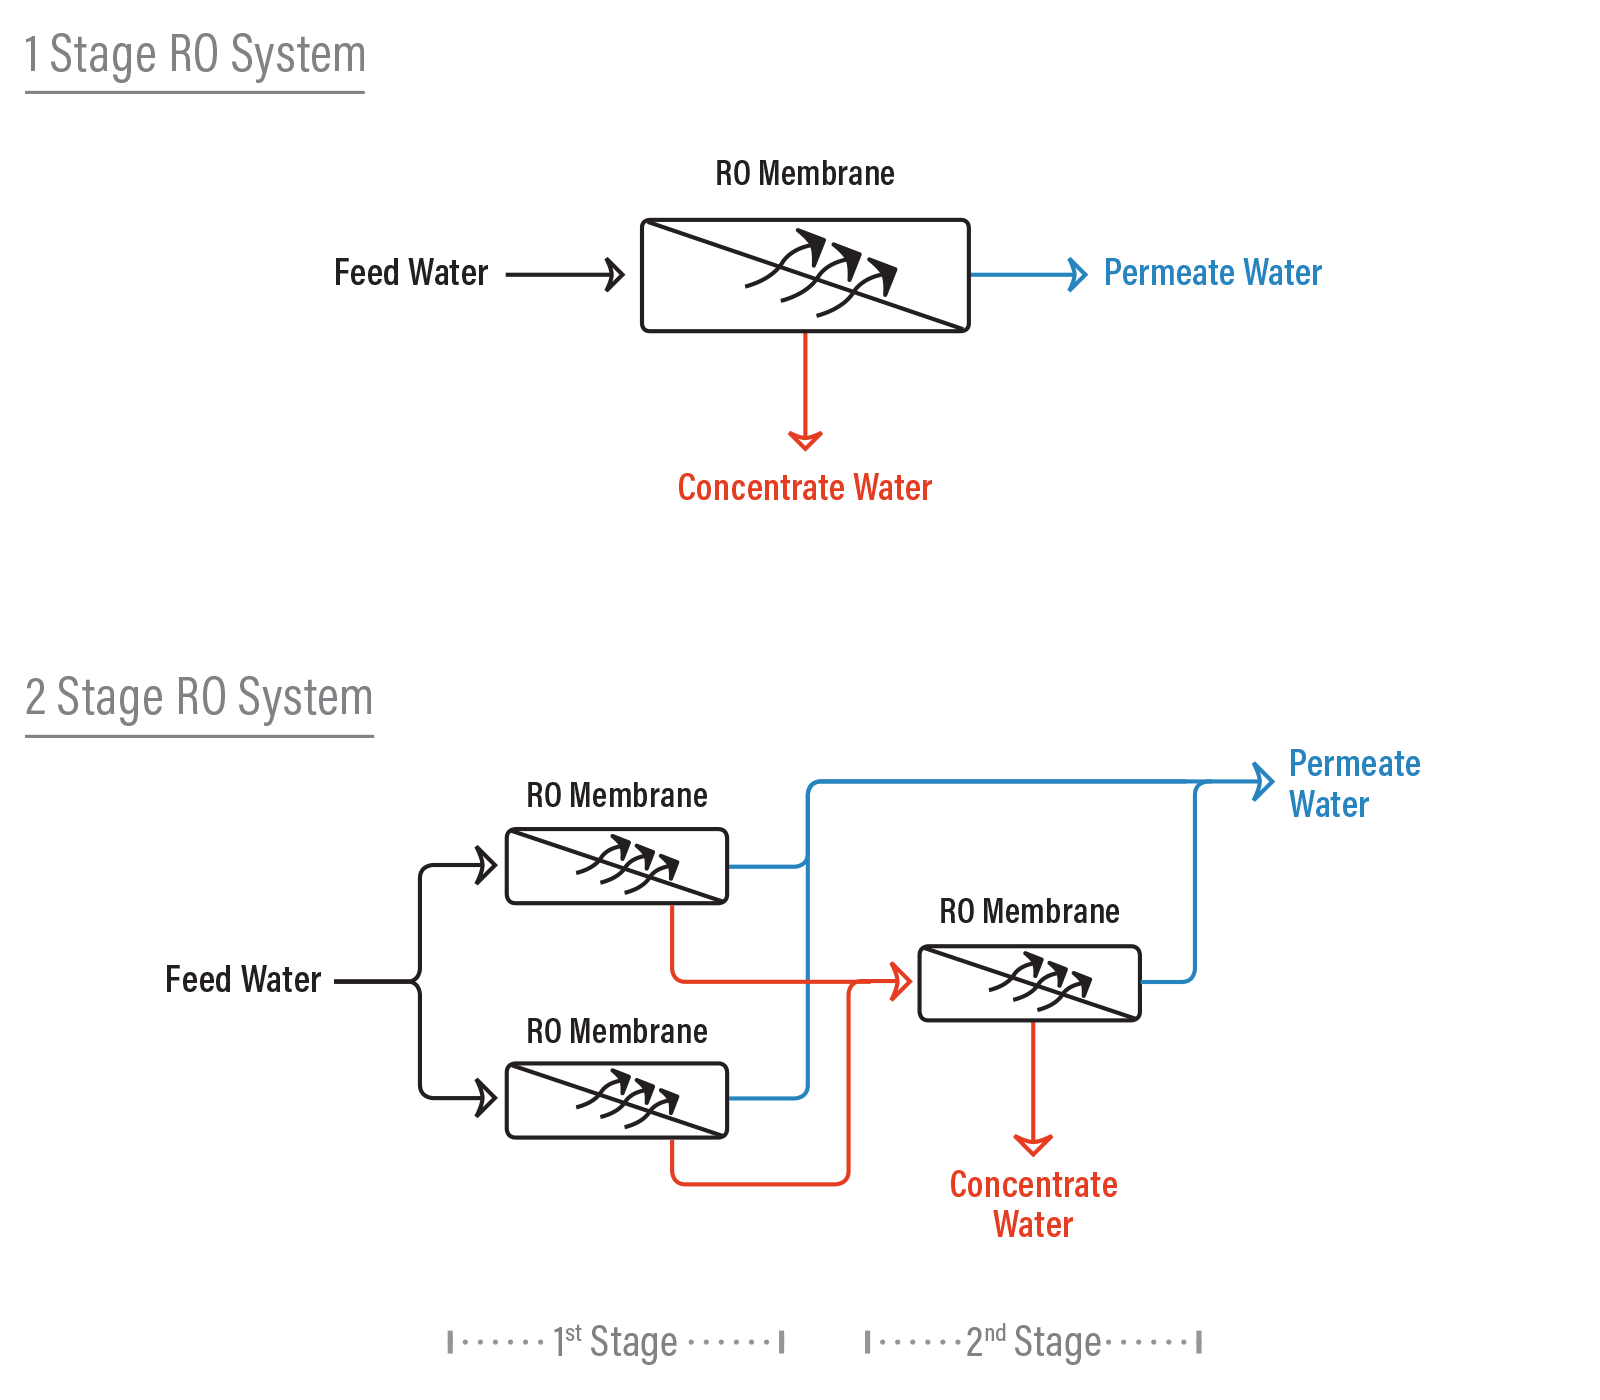 hight resolution of difference between a 1 and 2 stage ro system